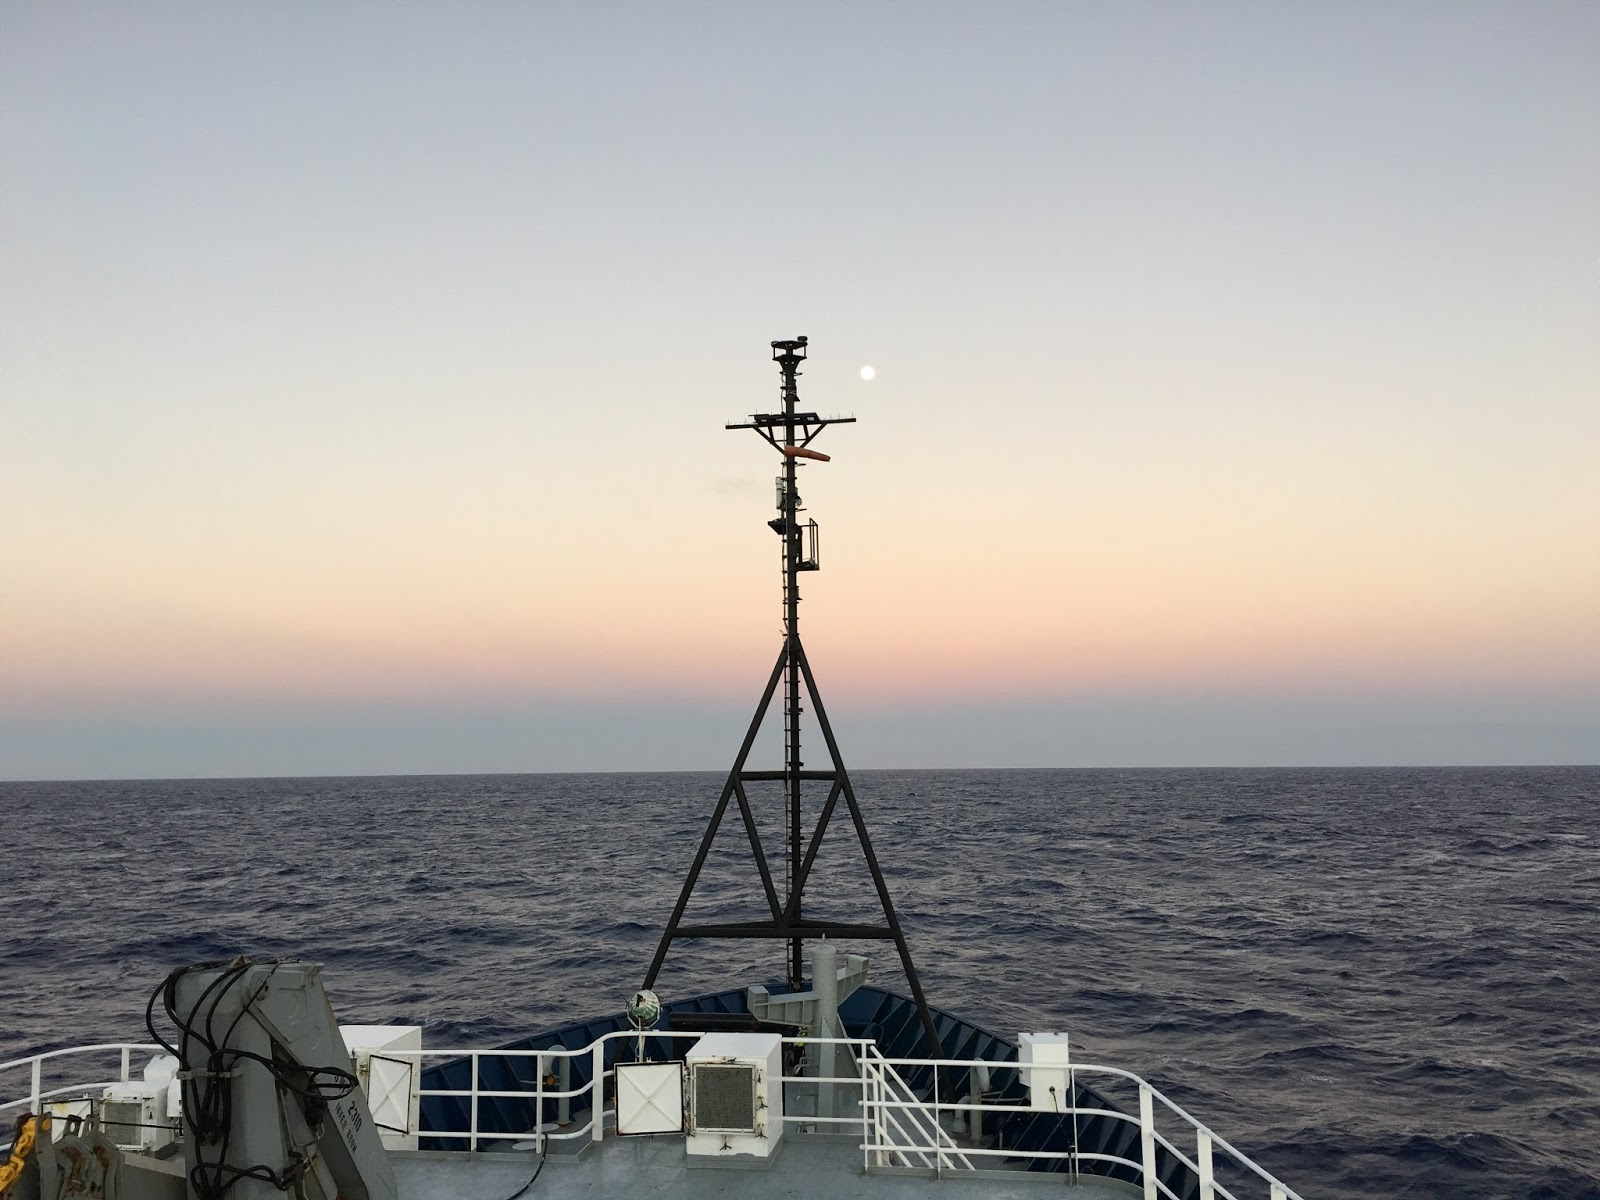 A view from the deck of the R/V Roger Revelle. Image credit: NOAA